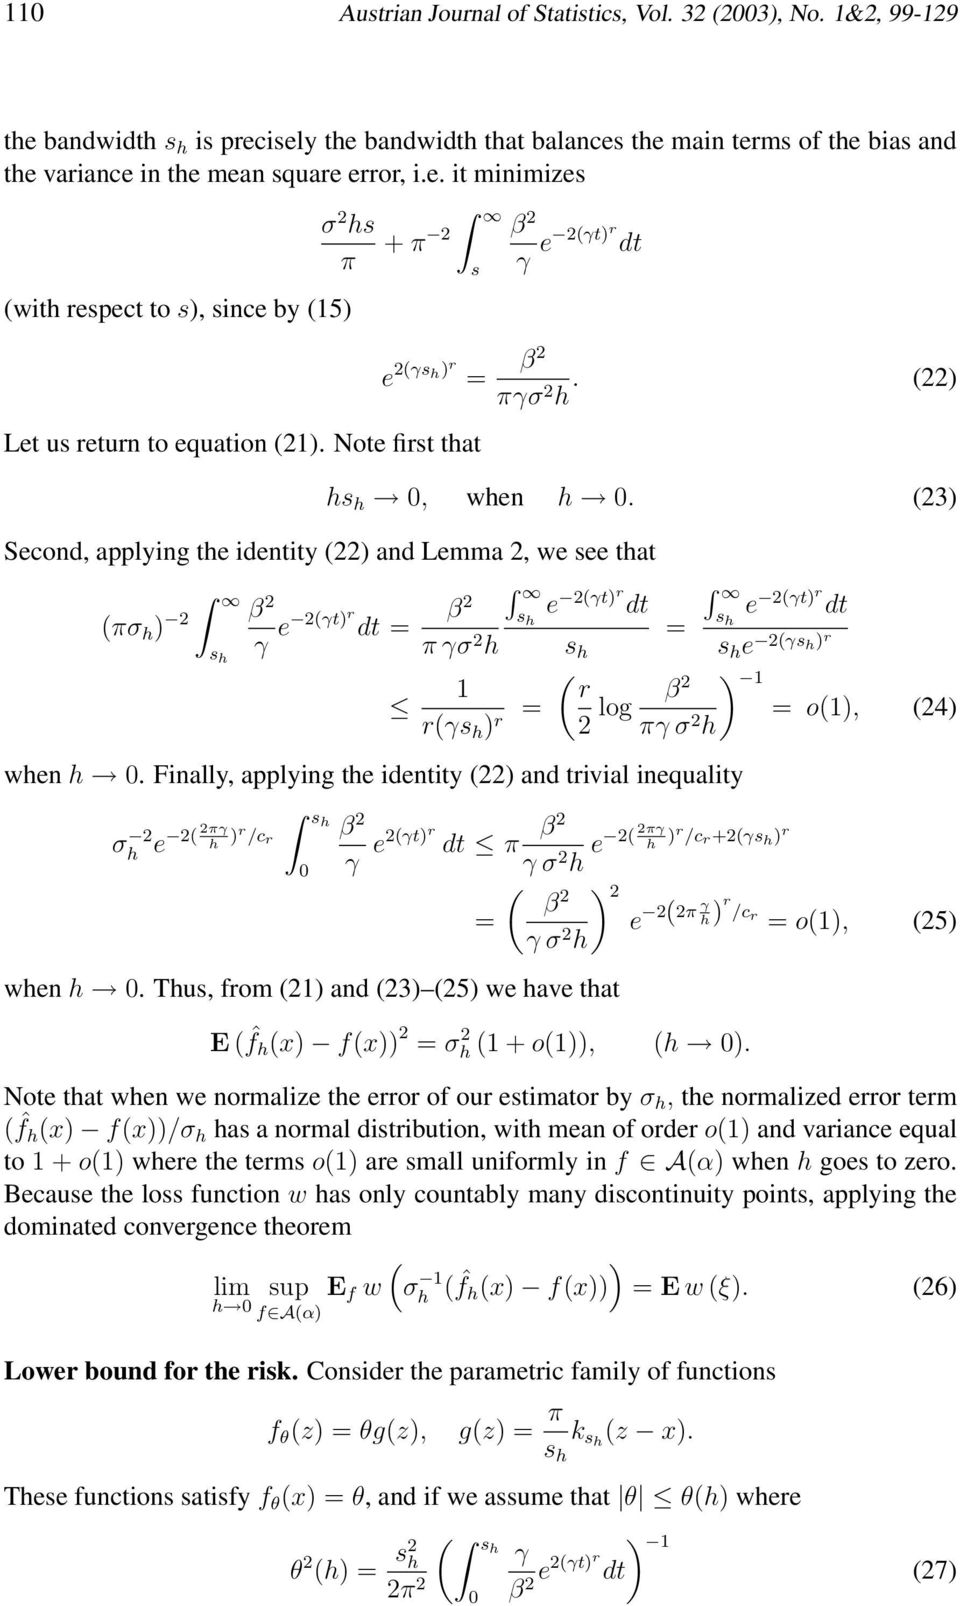 Finally, applying te identity and trivial inequality s σ γ e r/c r 0 γ eγtr β dt γ σ e β = γ σ wen 0.